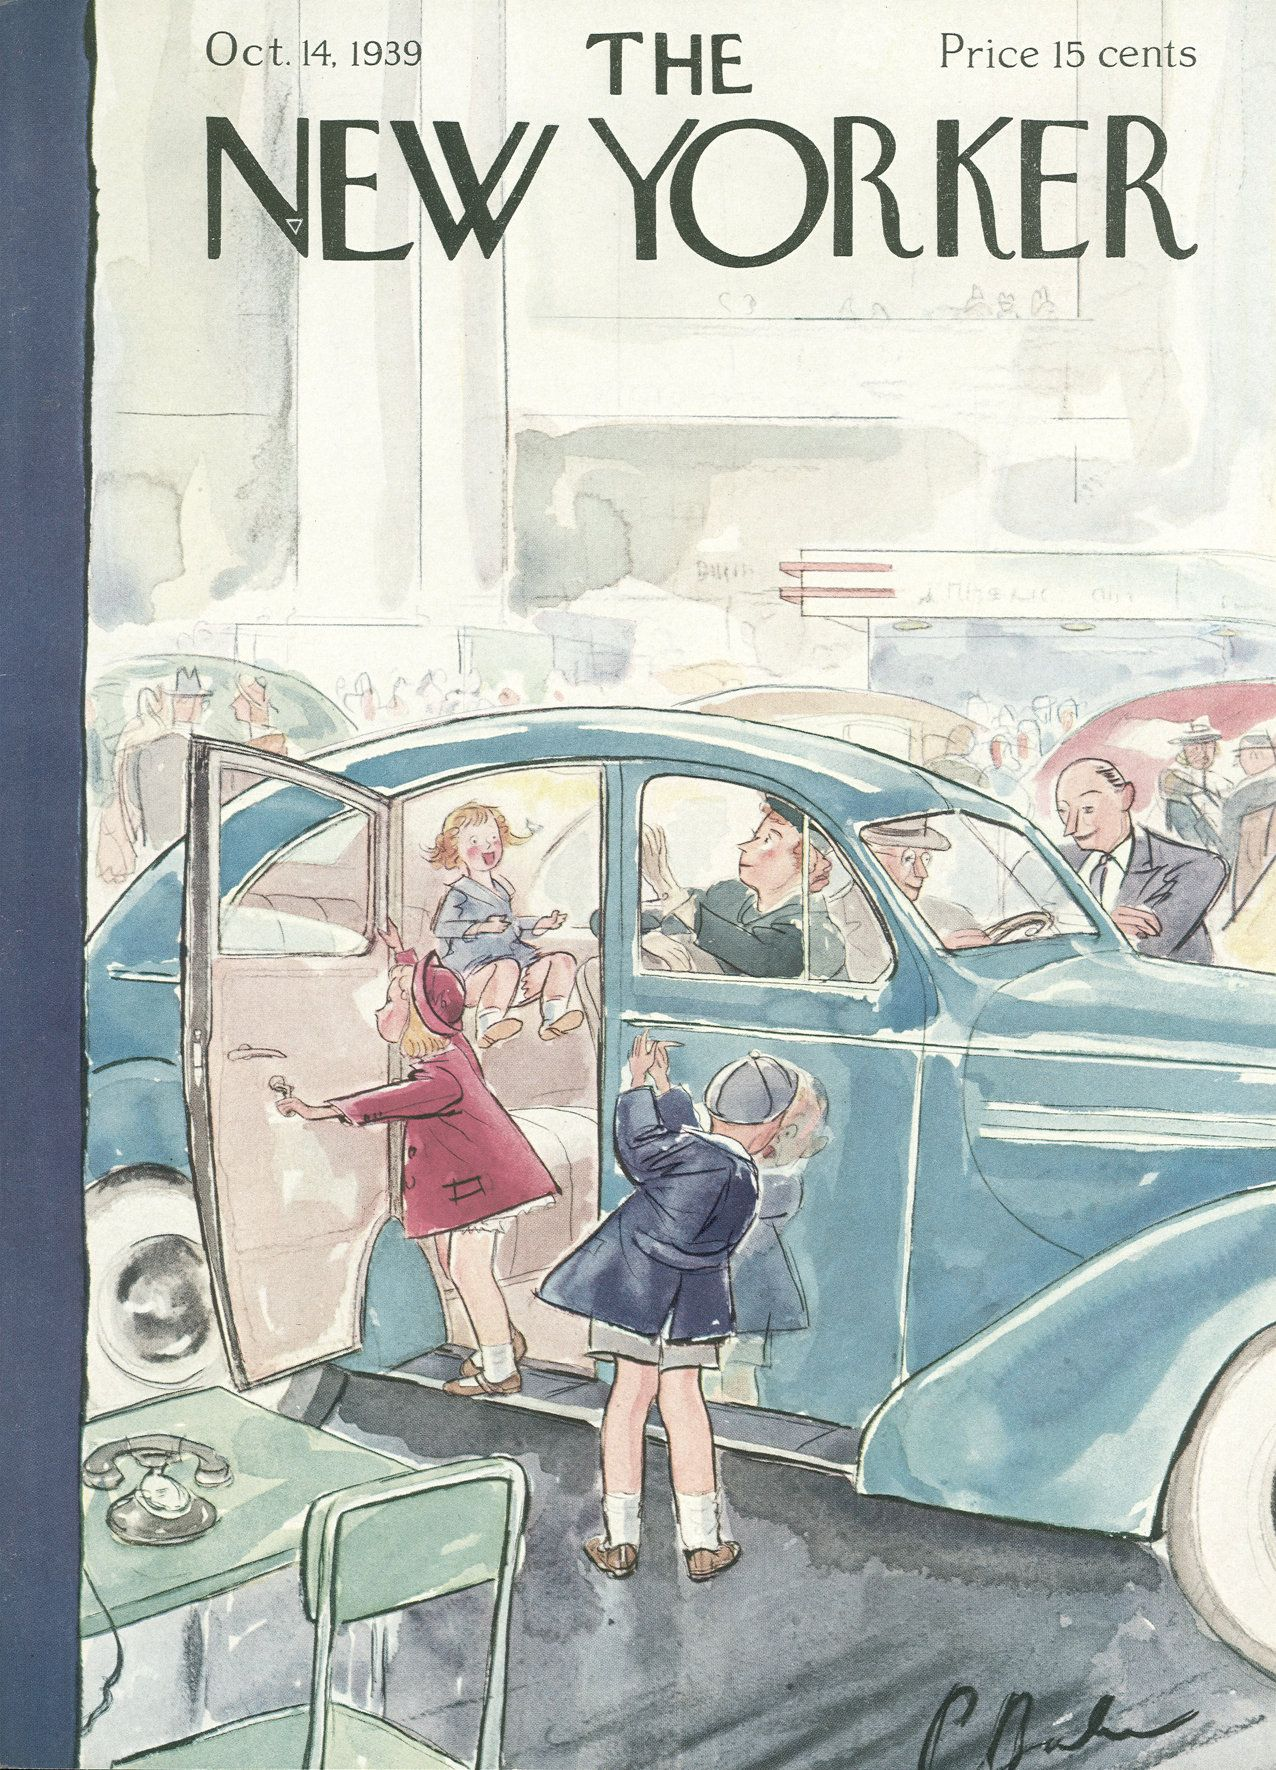 The New Yorker - Saturday, October 14, 1939 - Issue # 765 - Vol. 15 - N° 35 - Cover by : Perry Barlow